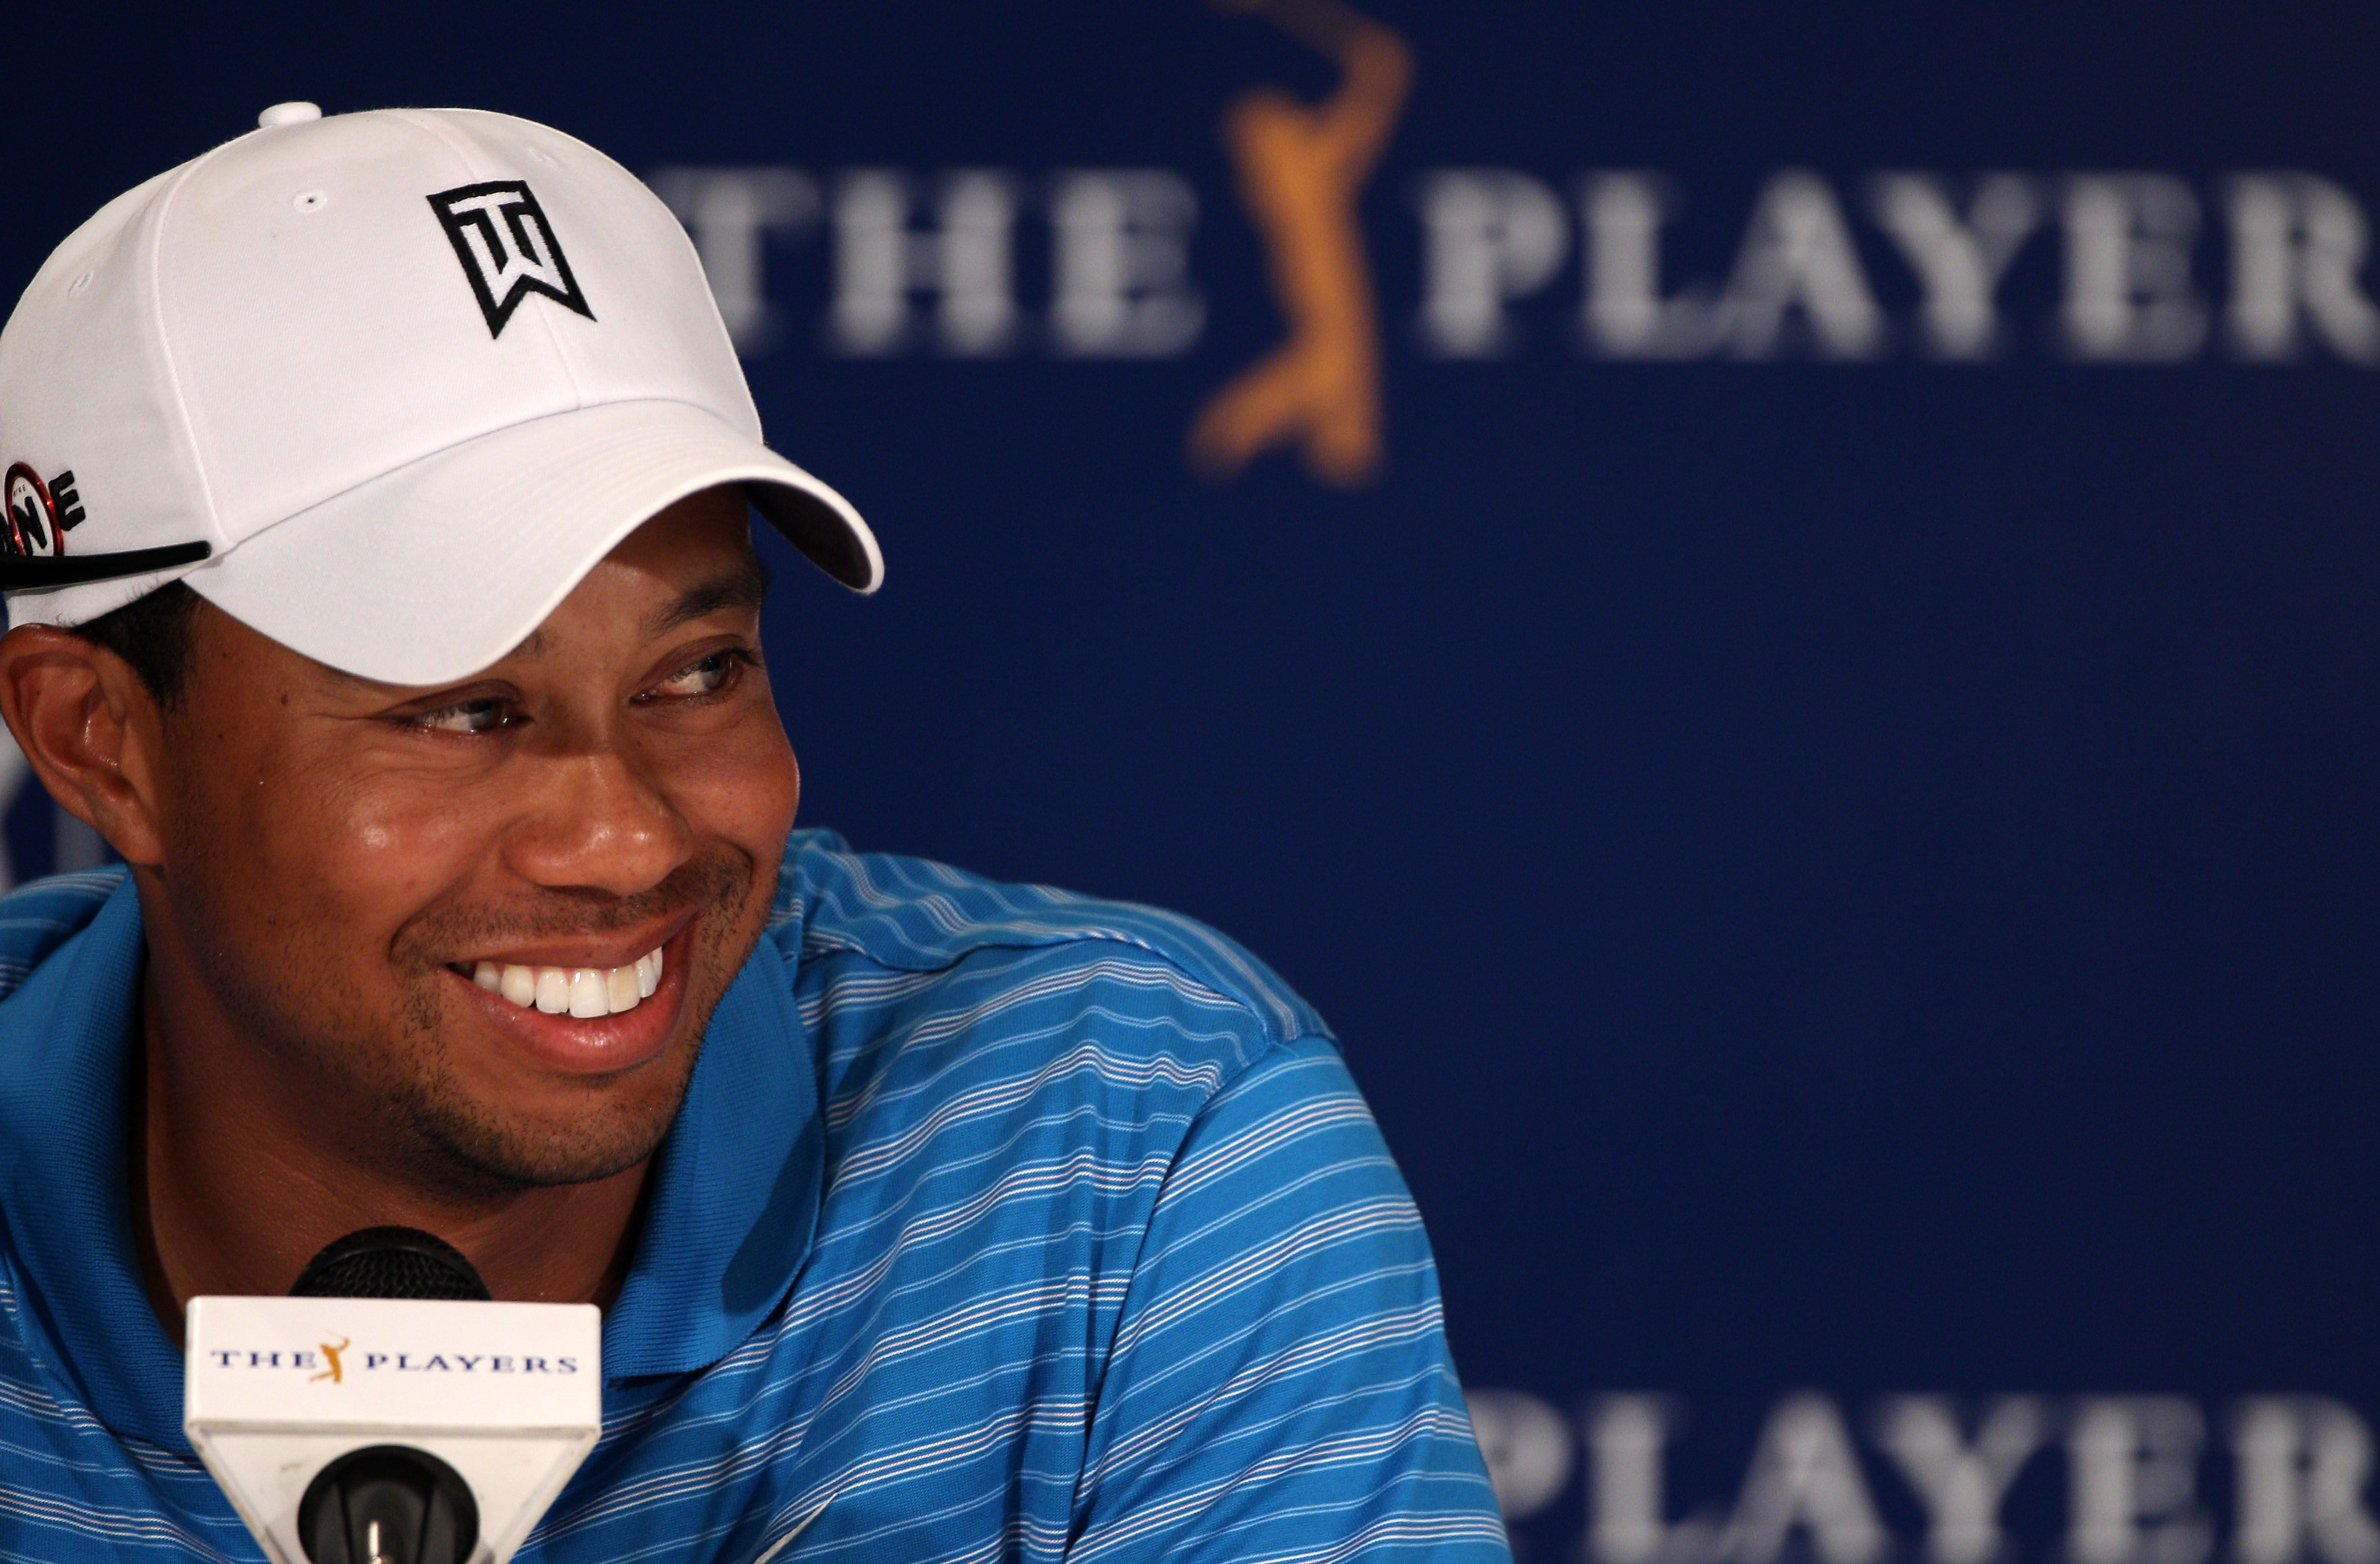 How old is tiger woods the golfer